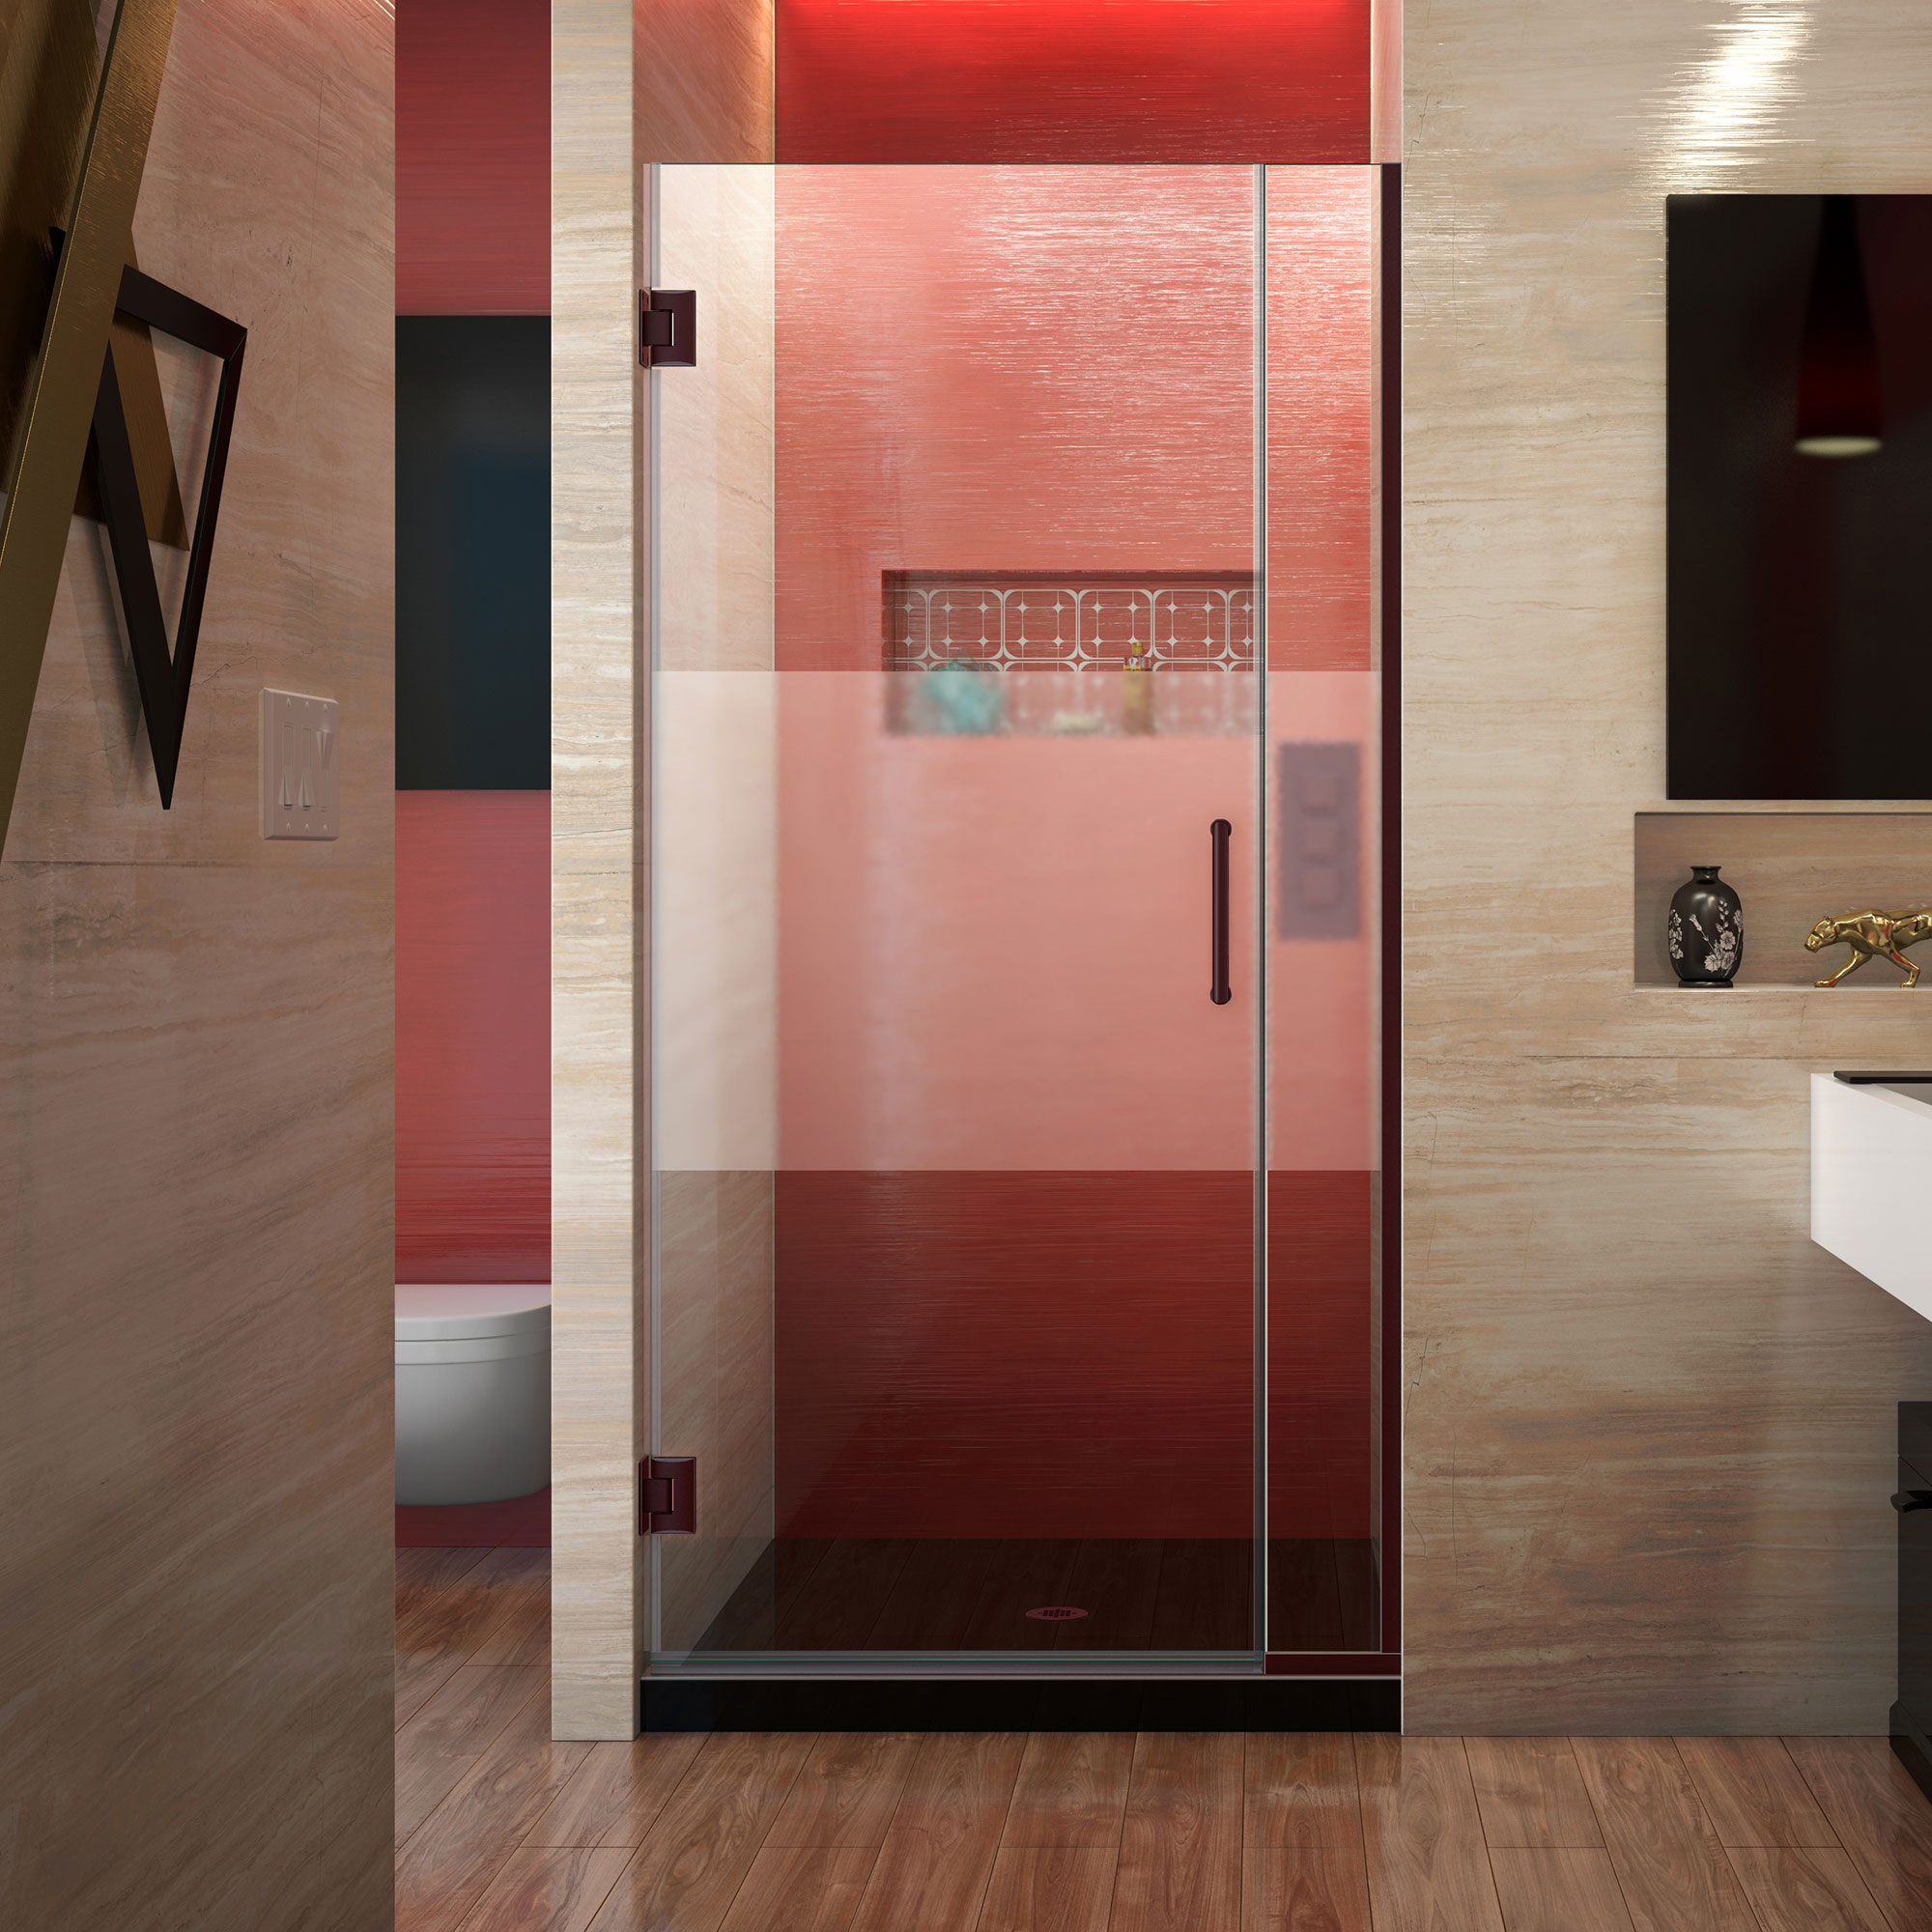 DreamLine Unidoor Plus 34-34 1/2 in. W x 72 in. H Frameless Hinged Shower Door, Frosted Band, Oil Rubbed Bronze